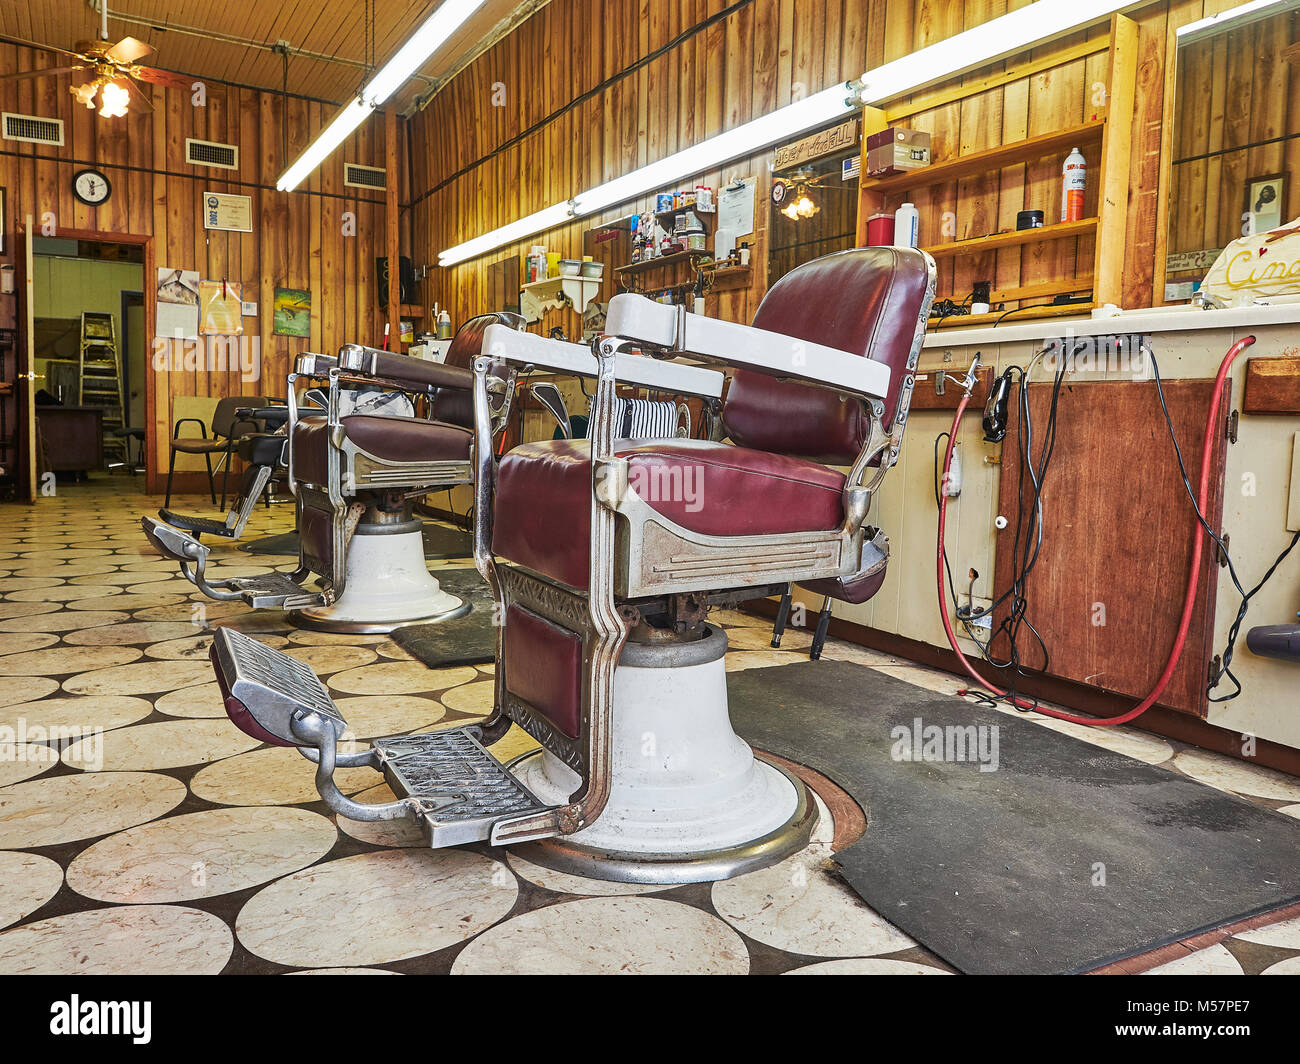 Old Vintage, Barber Chairs In An Empty Small Town Barber Shop Interior In  Prattville Alabama, USA.